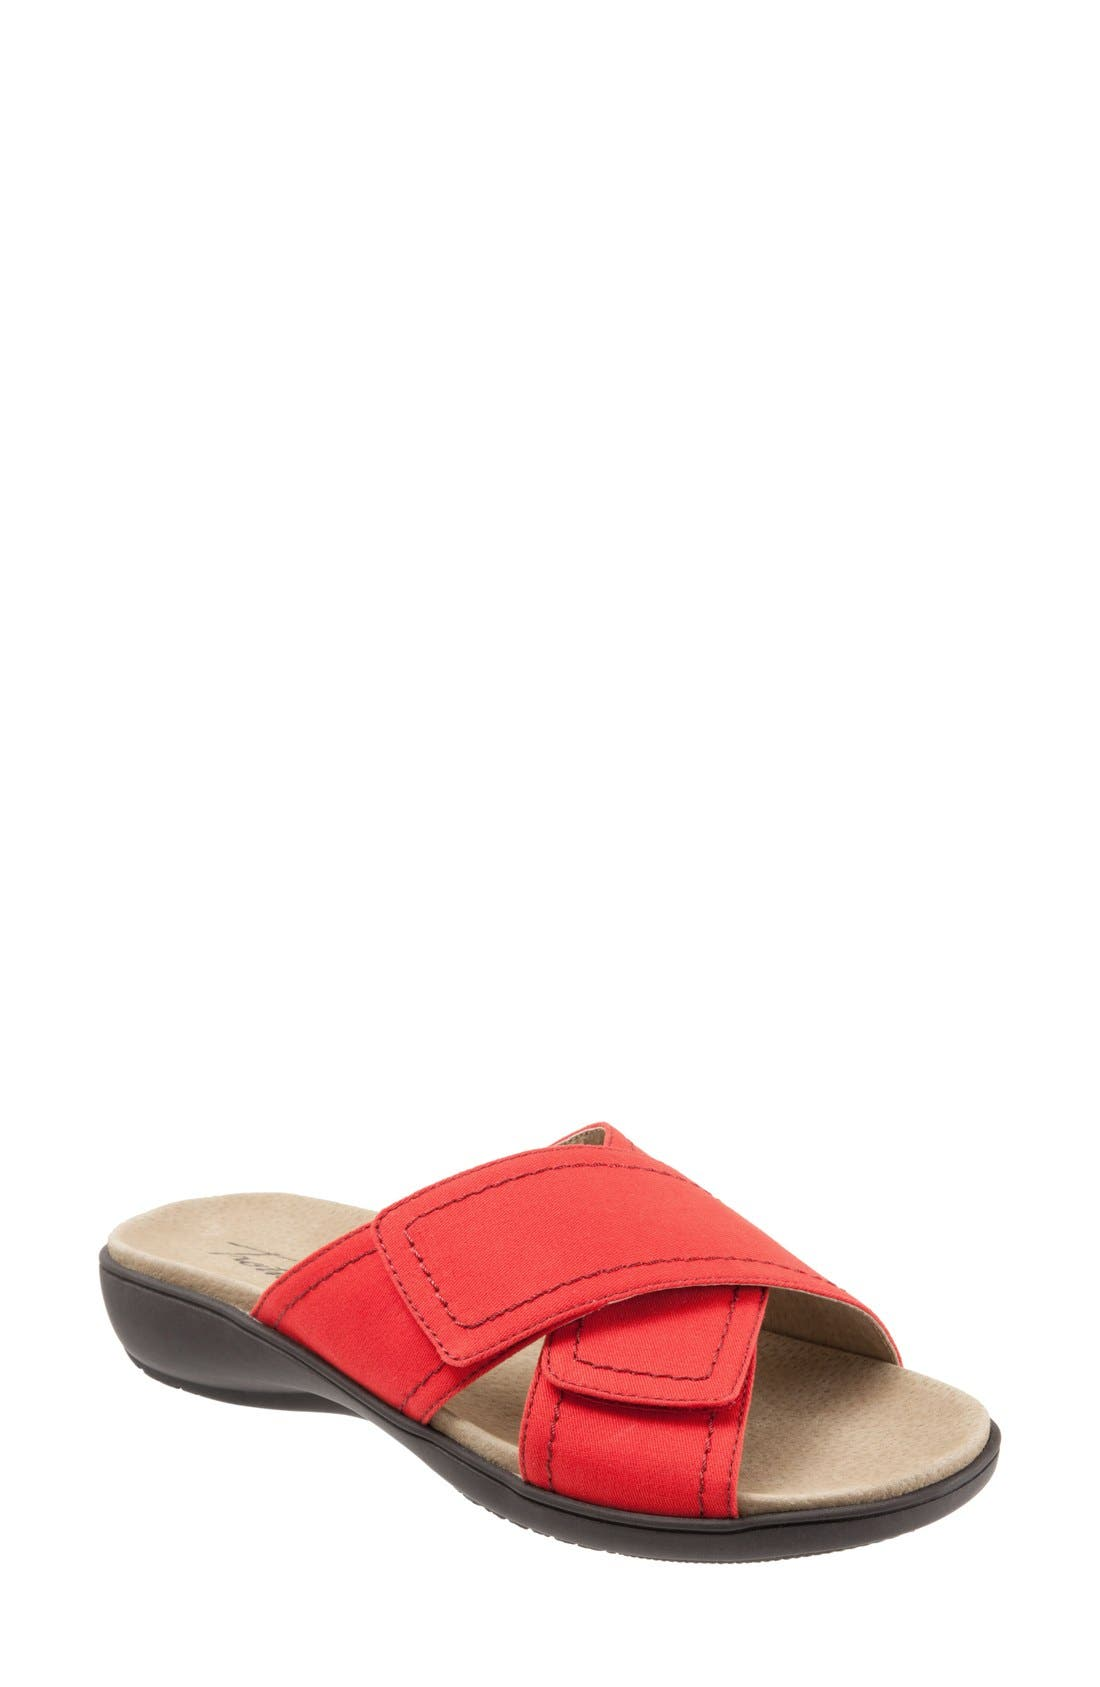 TROTTERS 'Getty' Sandal